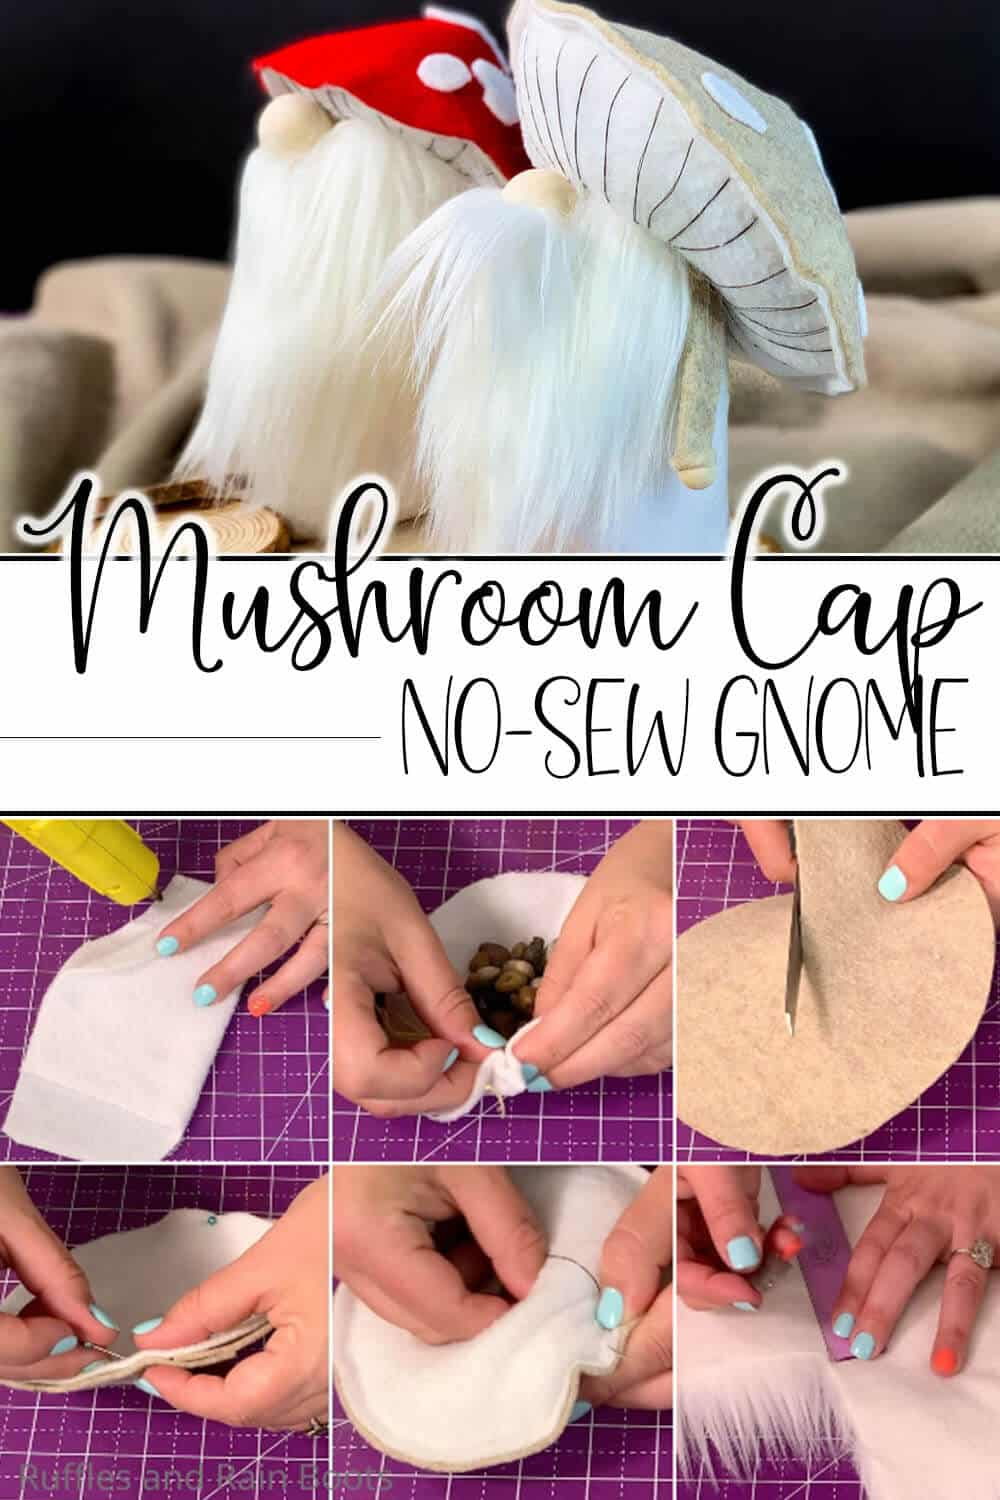 photo collage of easy no-sew gnome pattern to make a mushroom gnome with text which reads mushroom cap no-sew gnome